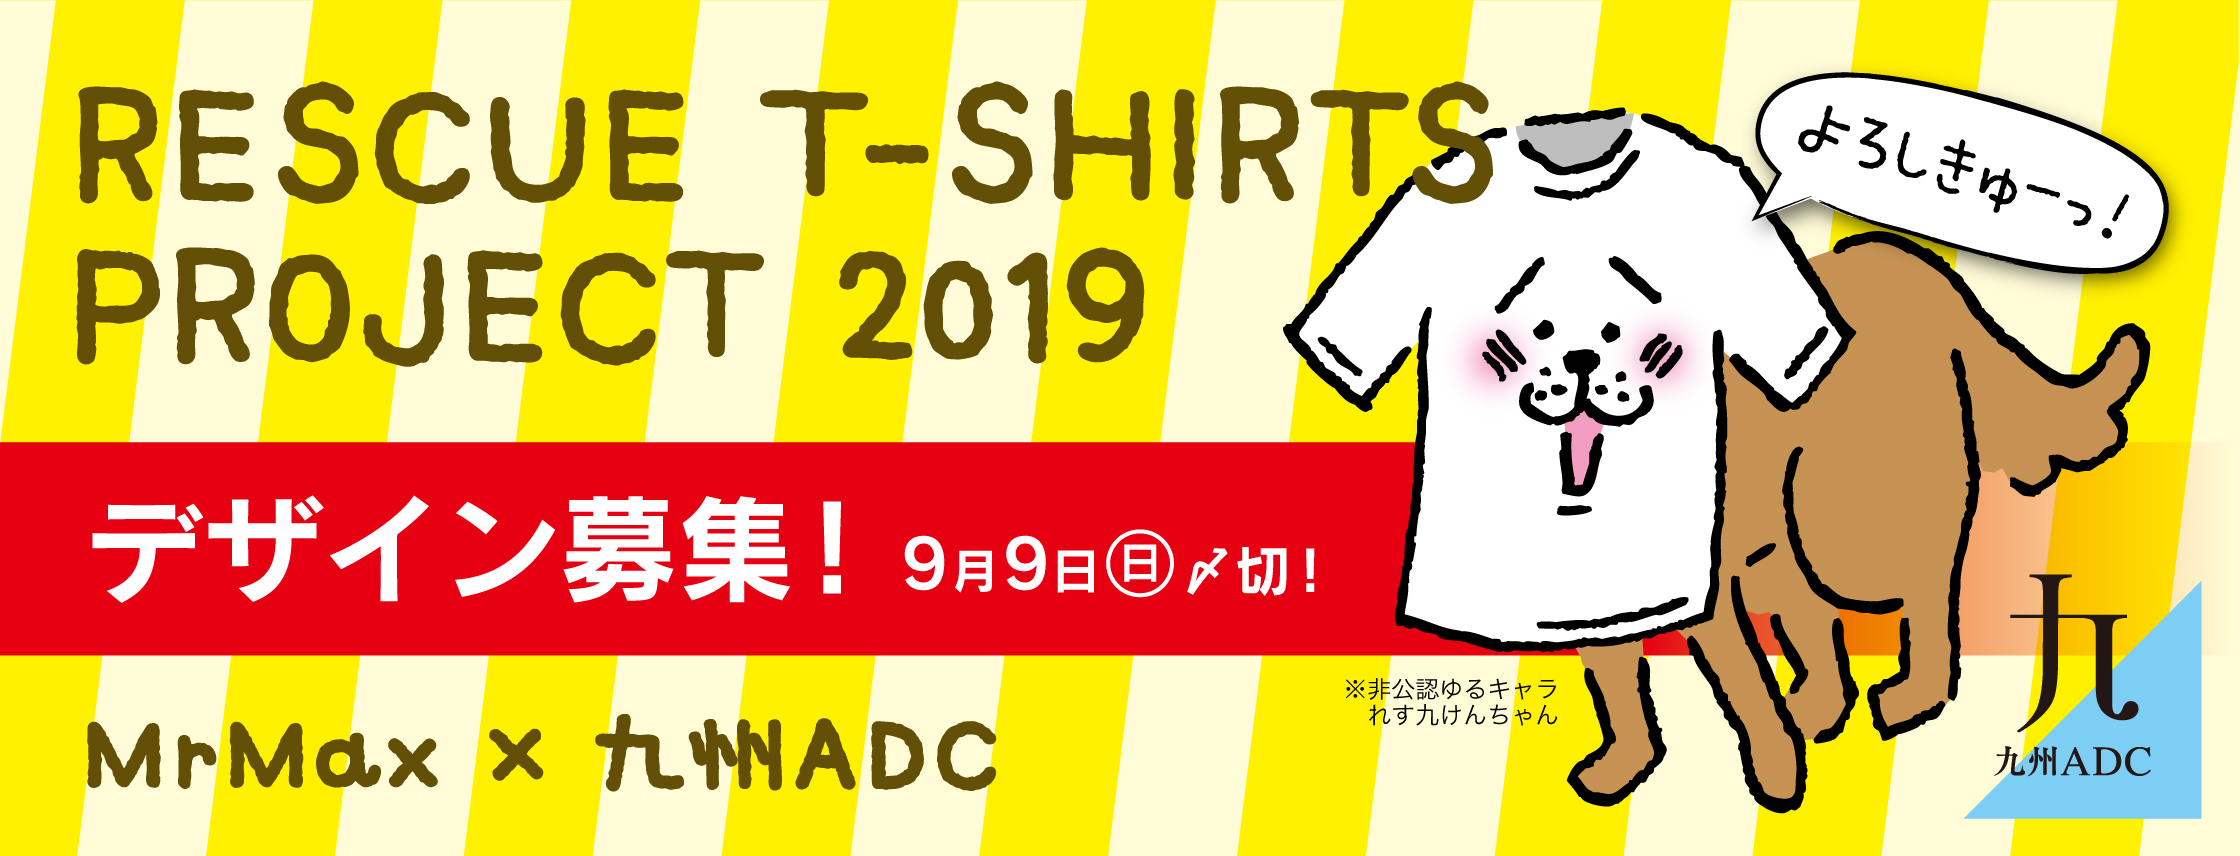 RESCUE T-SHIRTS PROJECT 2019